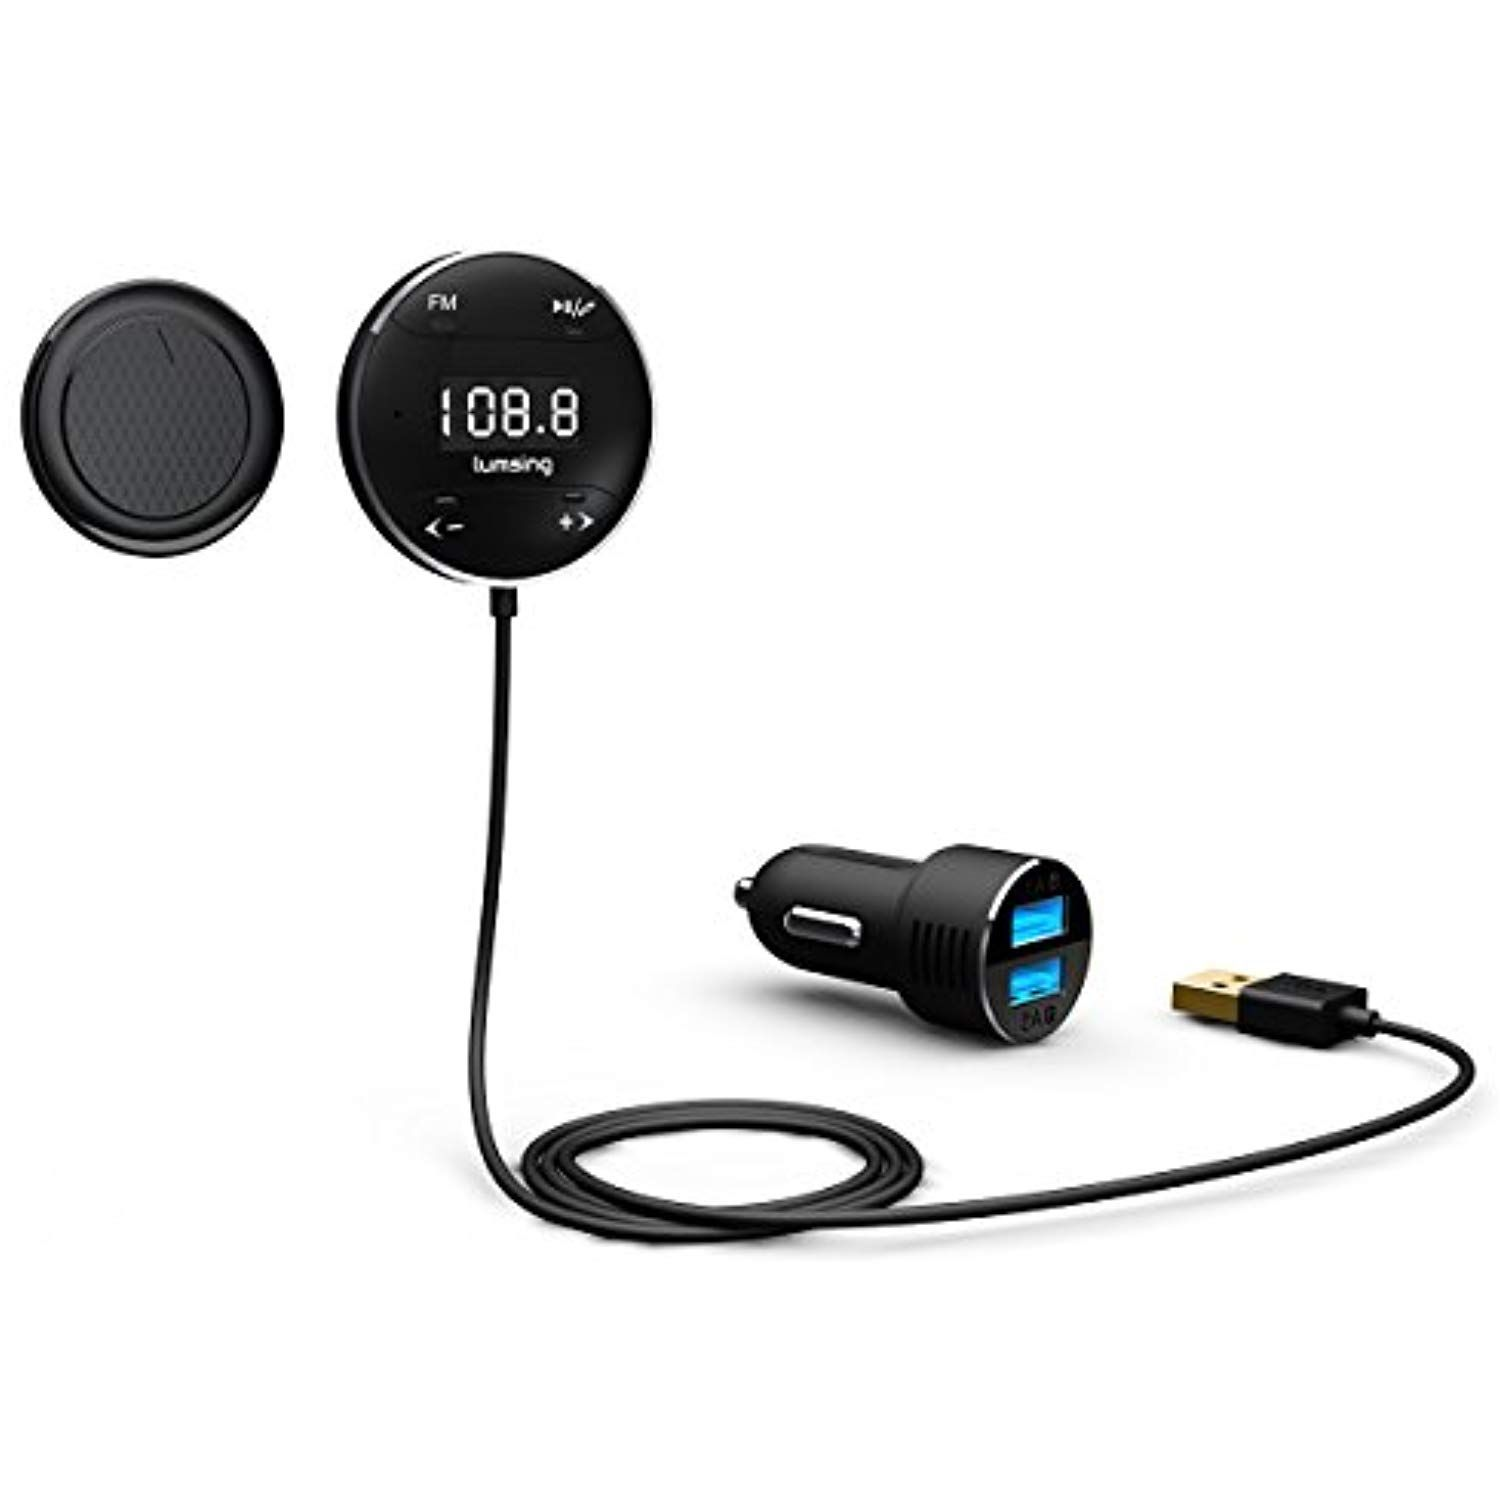 Bluetooth 4.0 Car FM Transmitter Radio Adapter USB Charger For iPhone XS XR 8 7